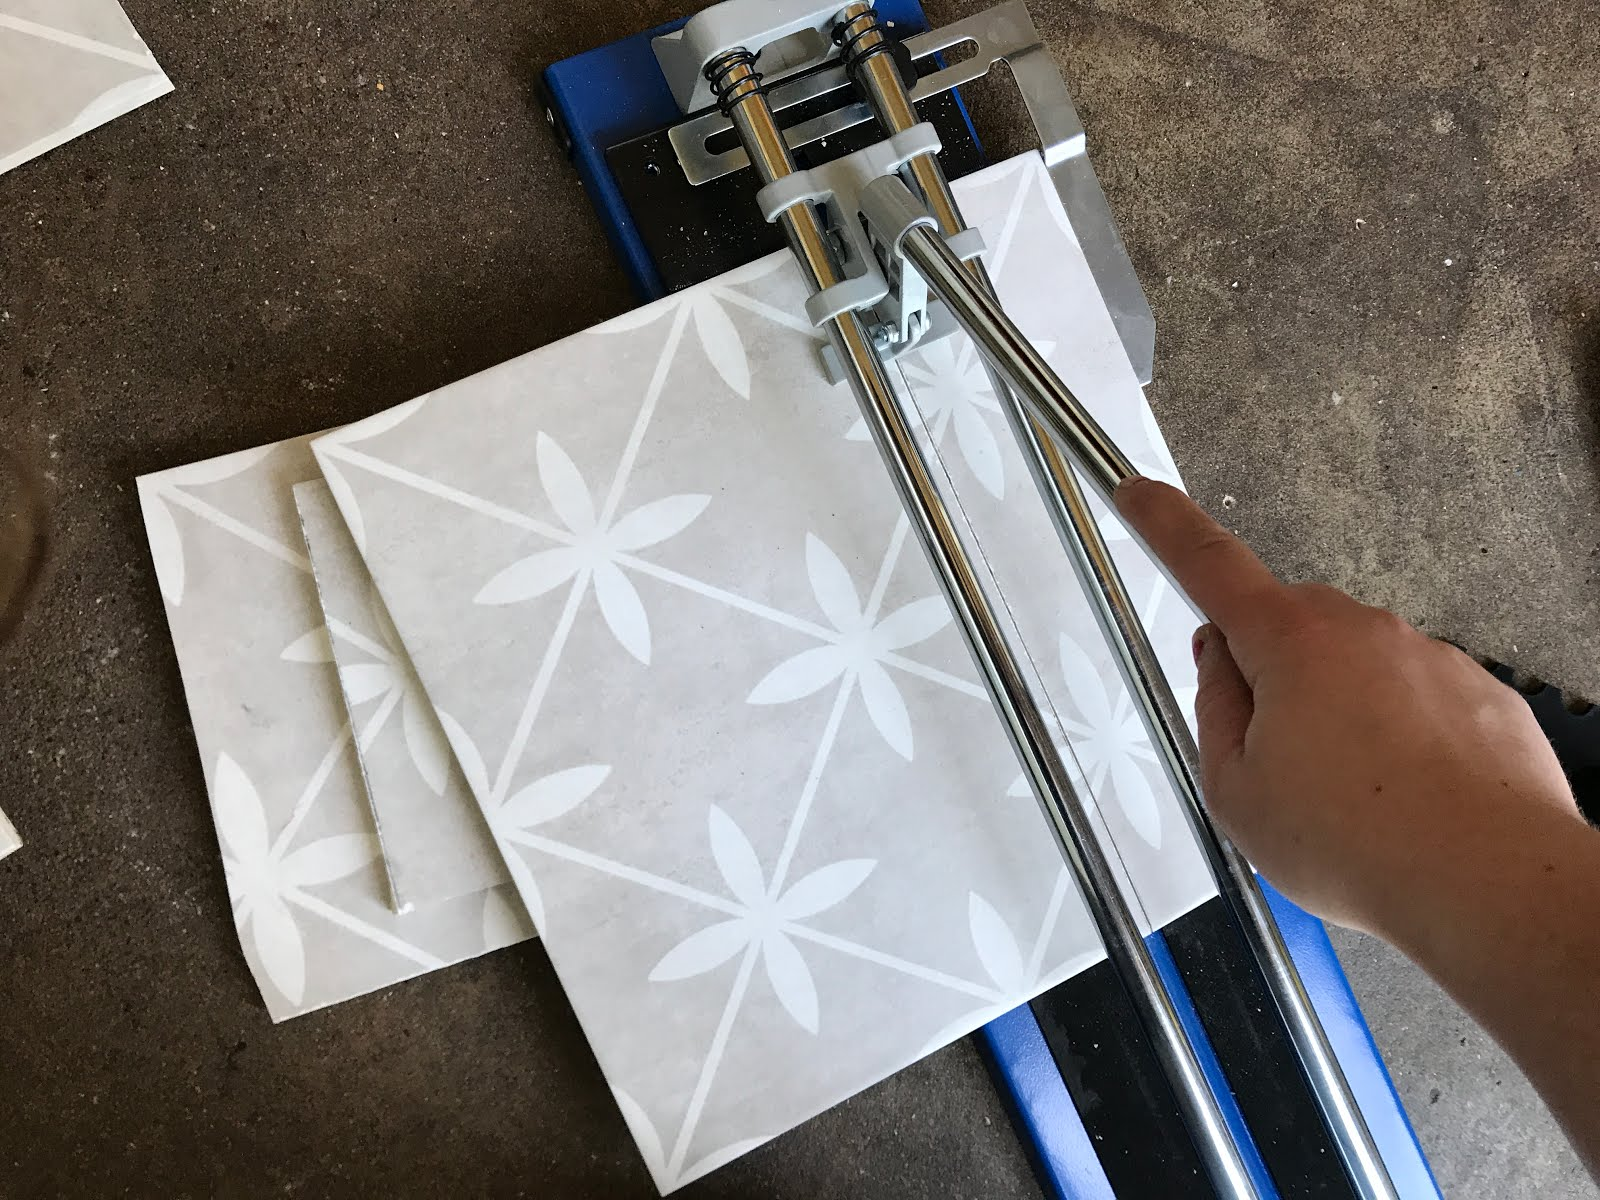 Using a manual tile cutter